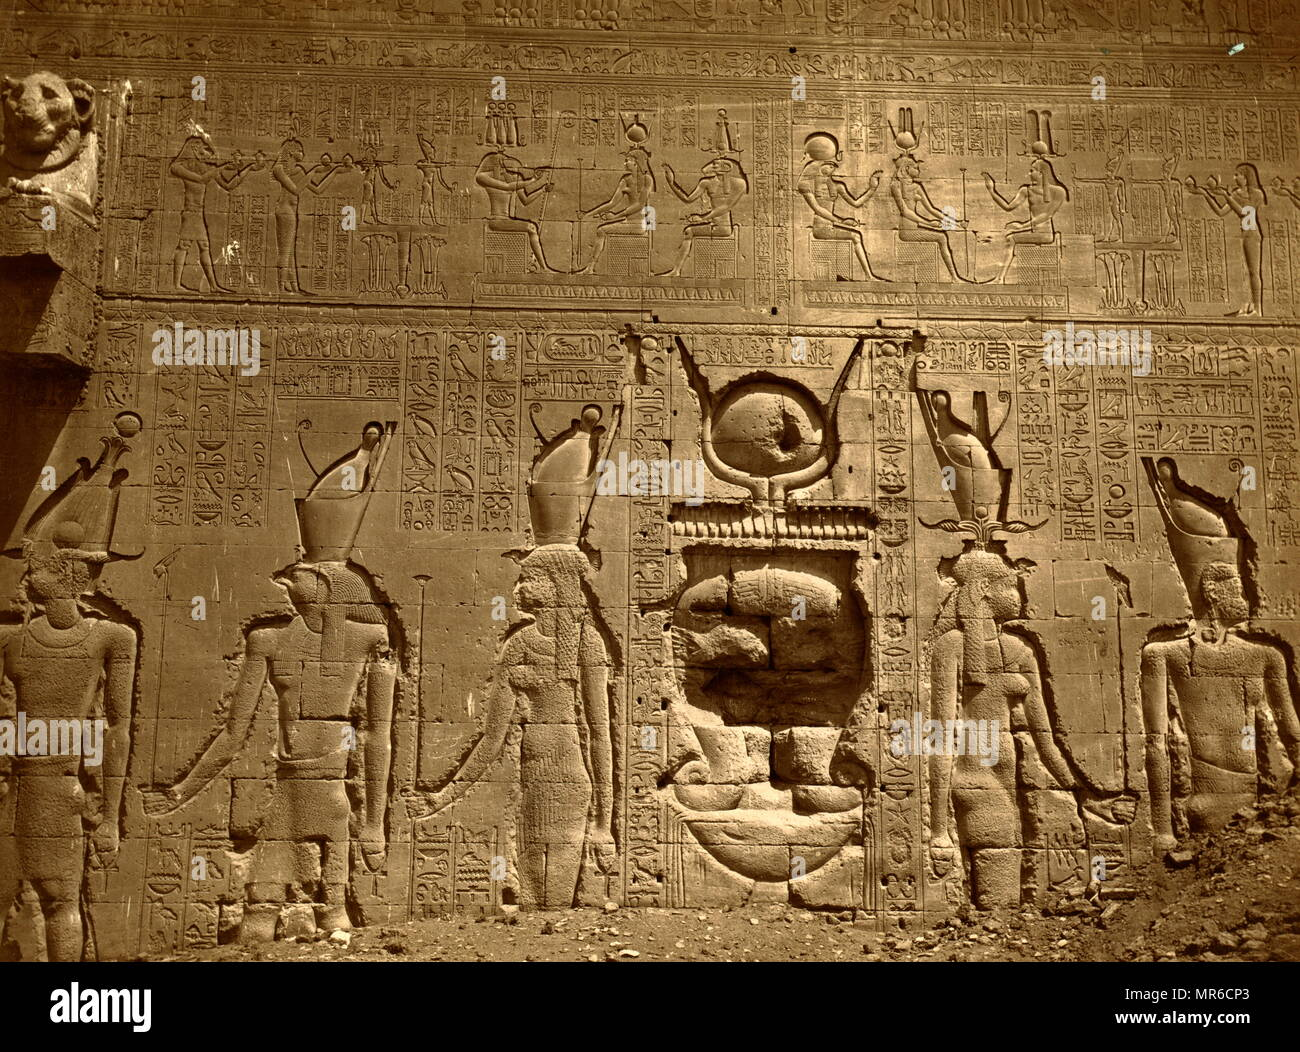 relief with hieroglyphics covers a wall in the Temple of Hathor, located in Dendera, Egypt. Dendera Temple complex. It is one of the best-preserved temple complexes in Egypt. The area was used as the sixth Nome of Upper Egypt, south of Abydos. - Stock Image